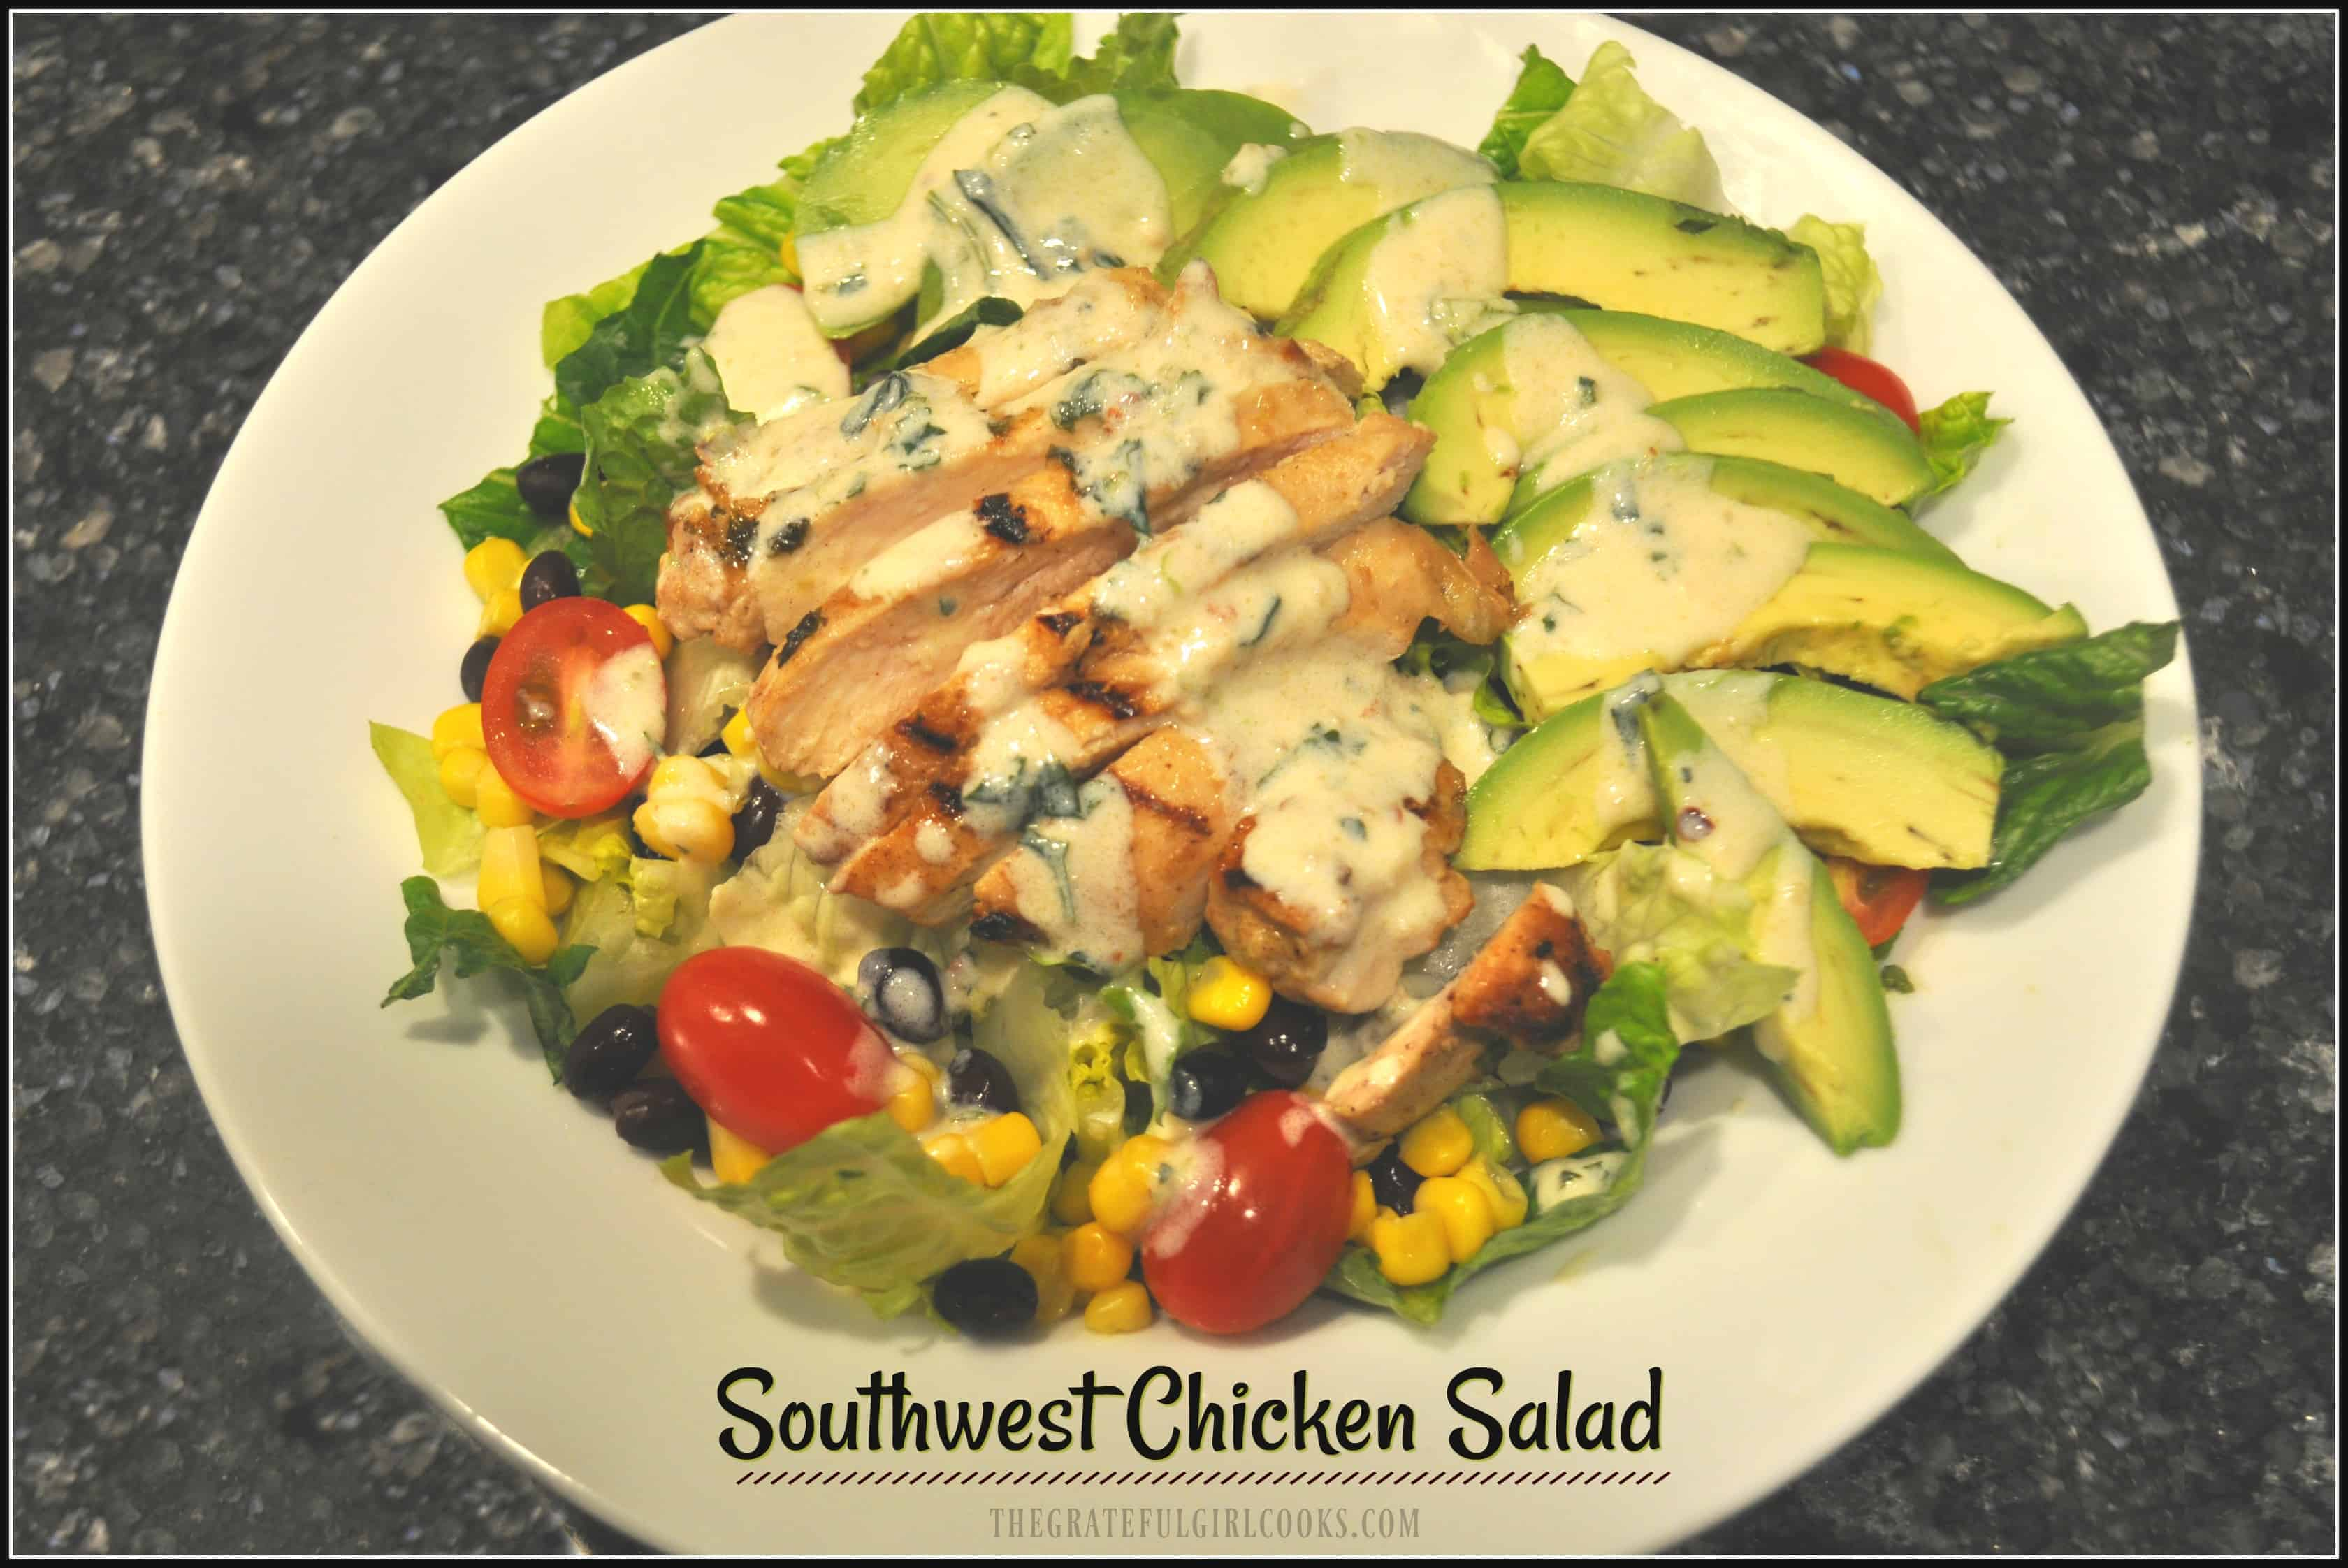 Southwest Chicken Salad / The Grateful Girl Cooks! You'll love this Southwest-inspired salad with marinated chicken, beans, corn, tomatoes, avocados, and lettuce, topped w/ a creamy lime cilantro dressing!